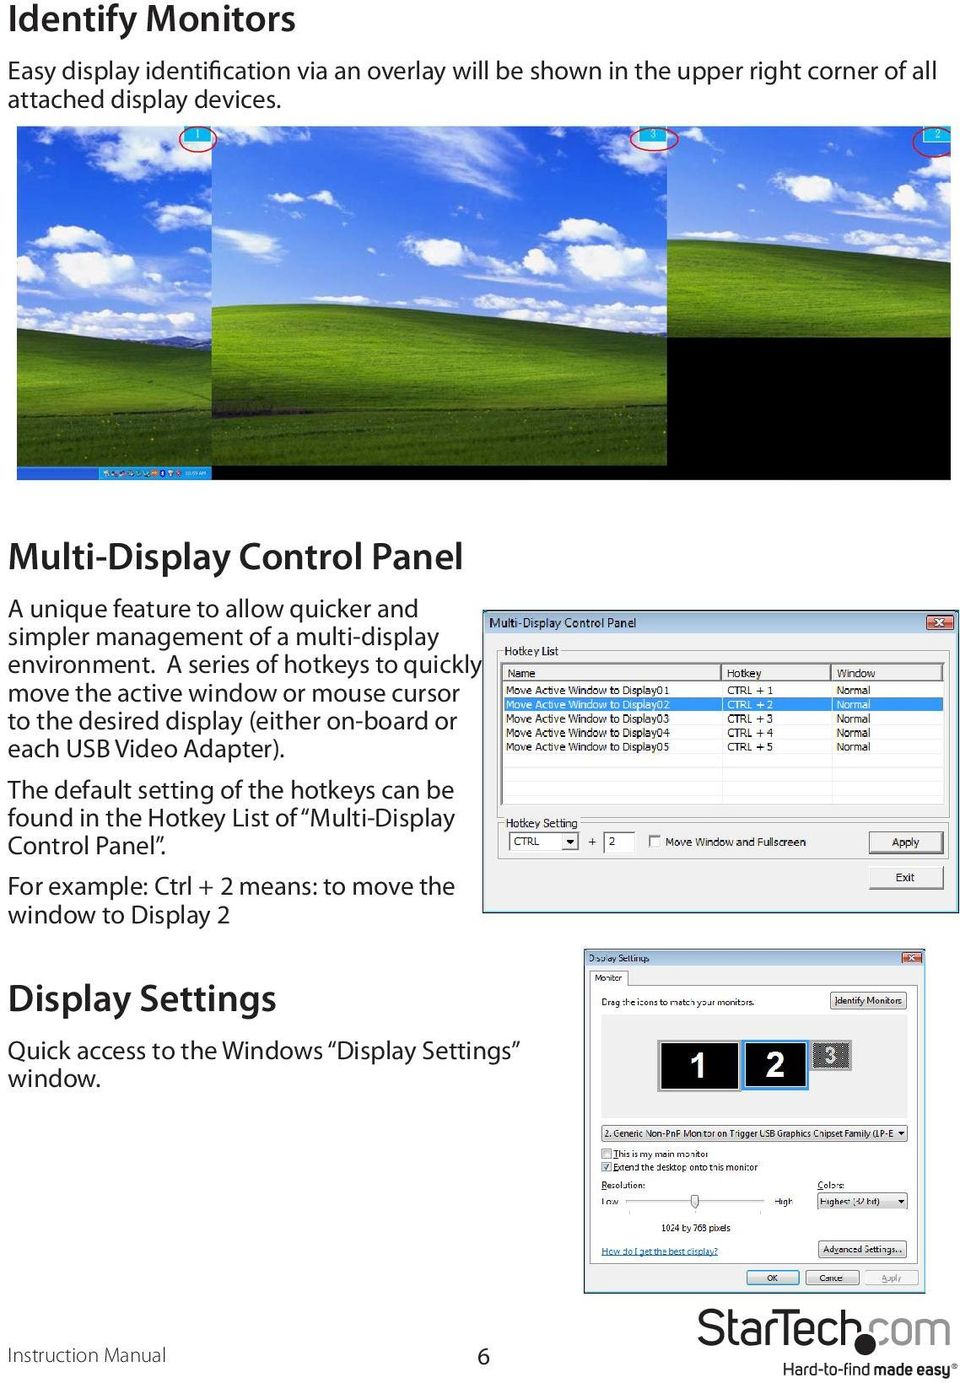 A series of hotkeys to quickly move the active window or mouse cursor to the desired display (either on-board or each USB Video Adapter).